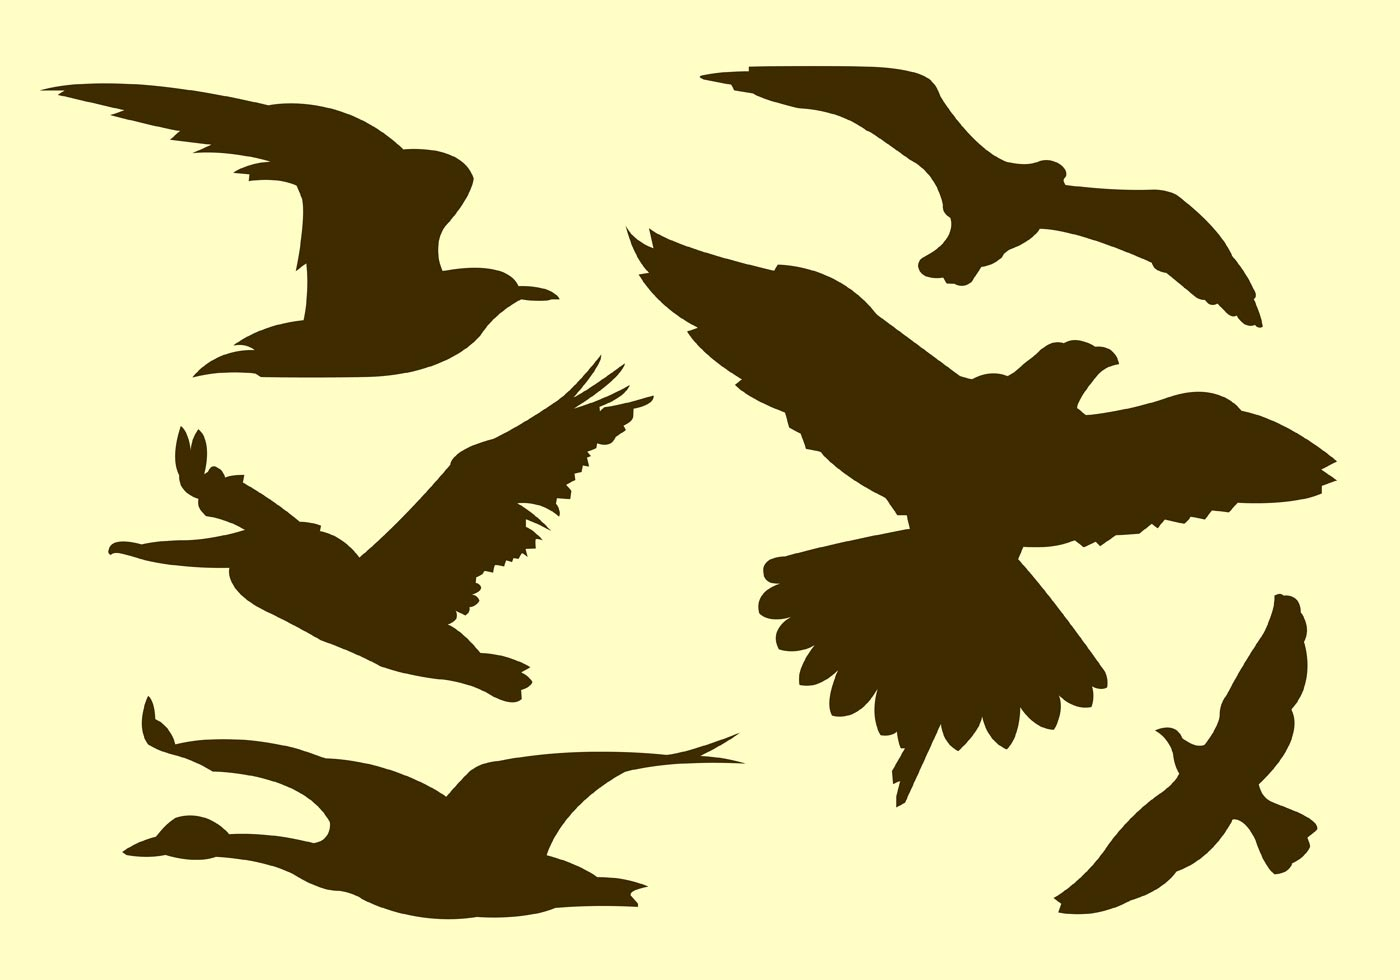 Vector Collection of Flying Bird Silhouettes - Download Free Vectors, Clipart Graphics & Vector Art